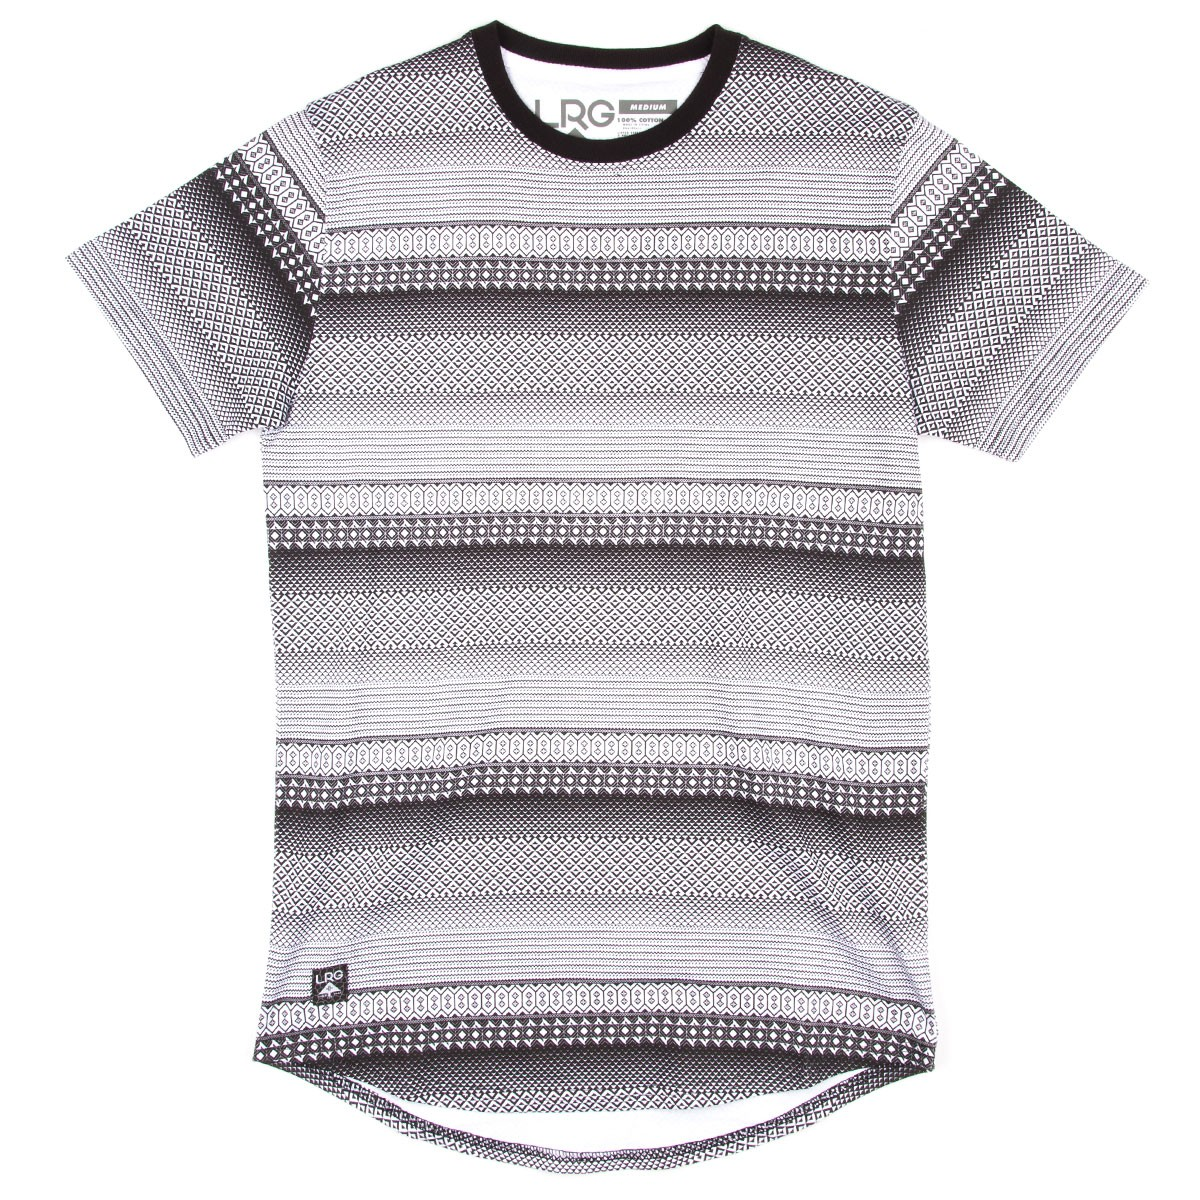 LRG Slim Fit Scoop T-Shirt - Cold Winter